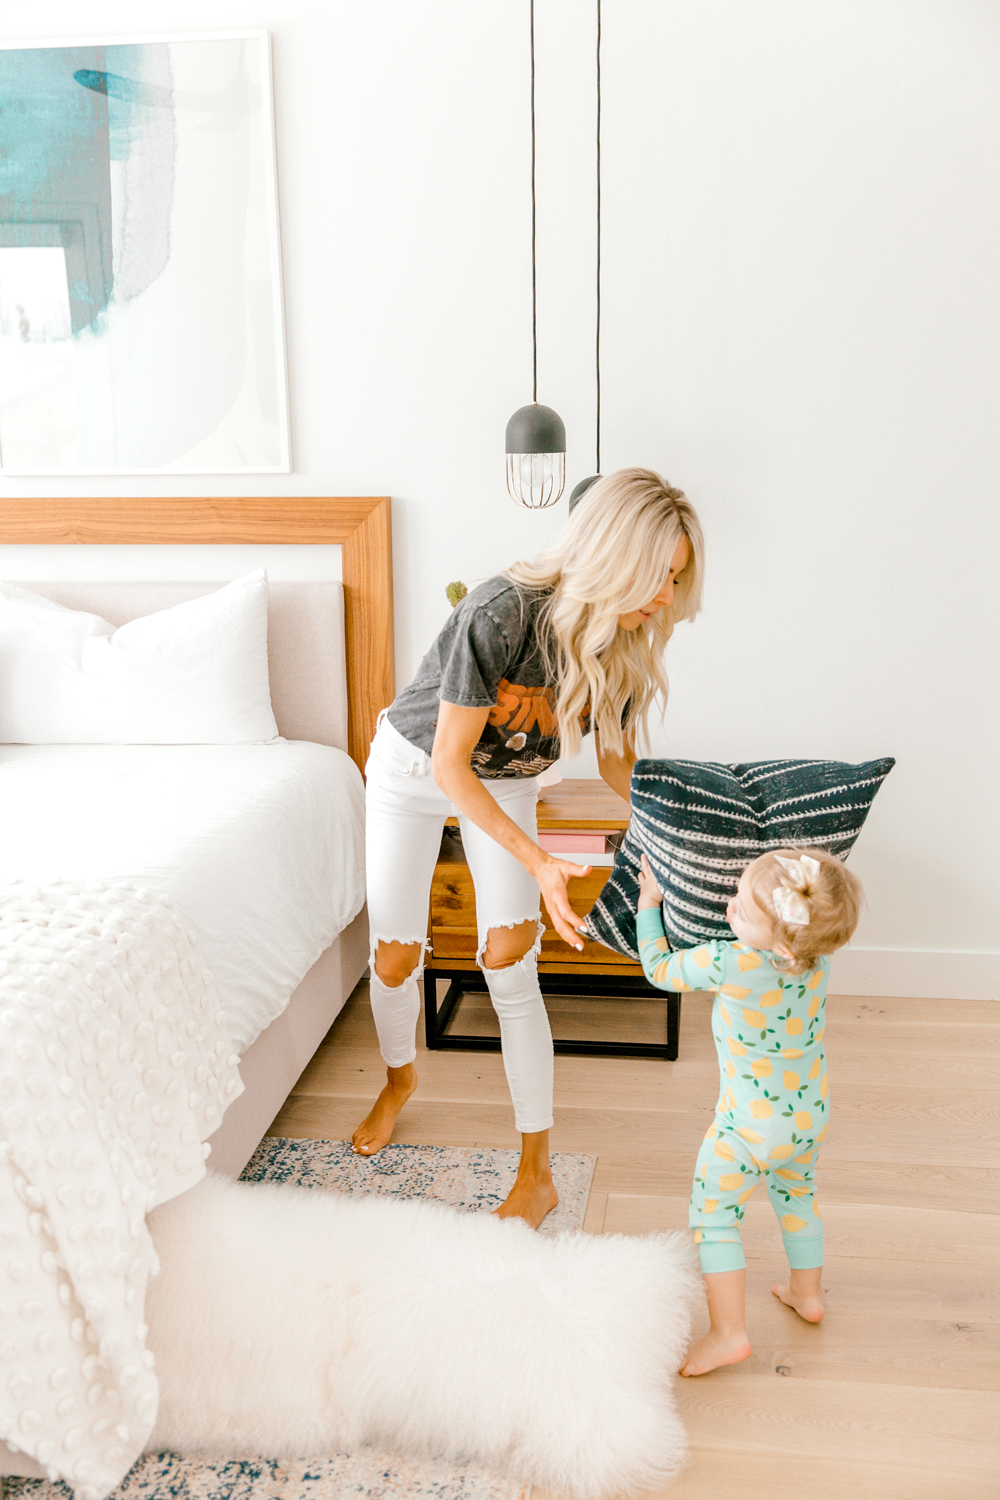 kailee wright morning routine